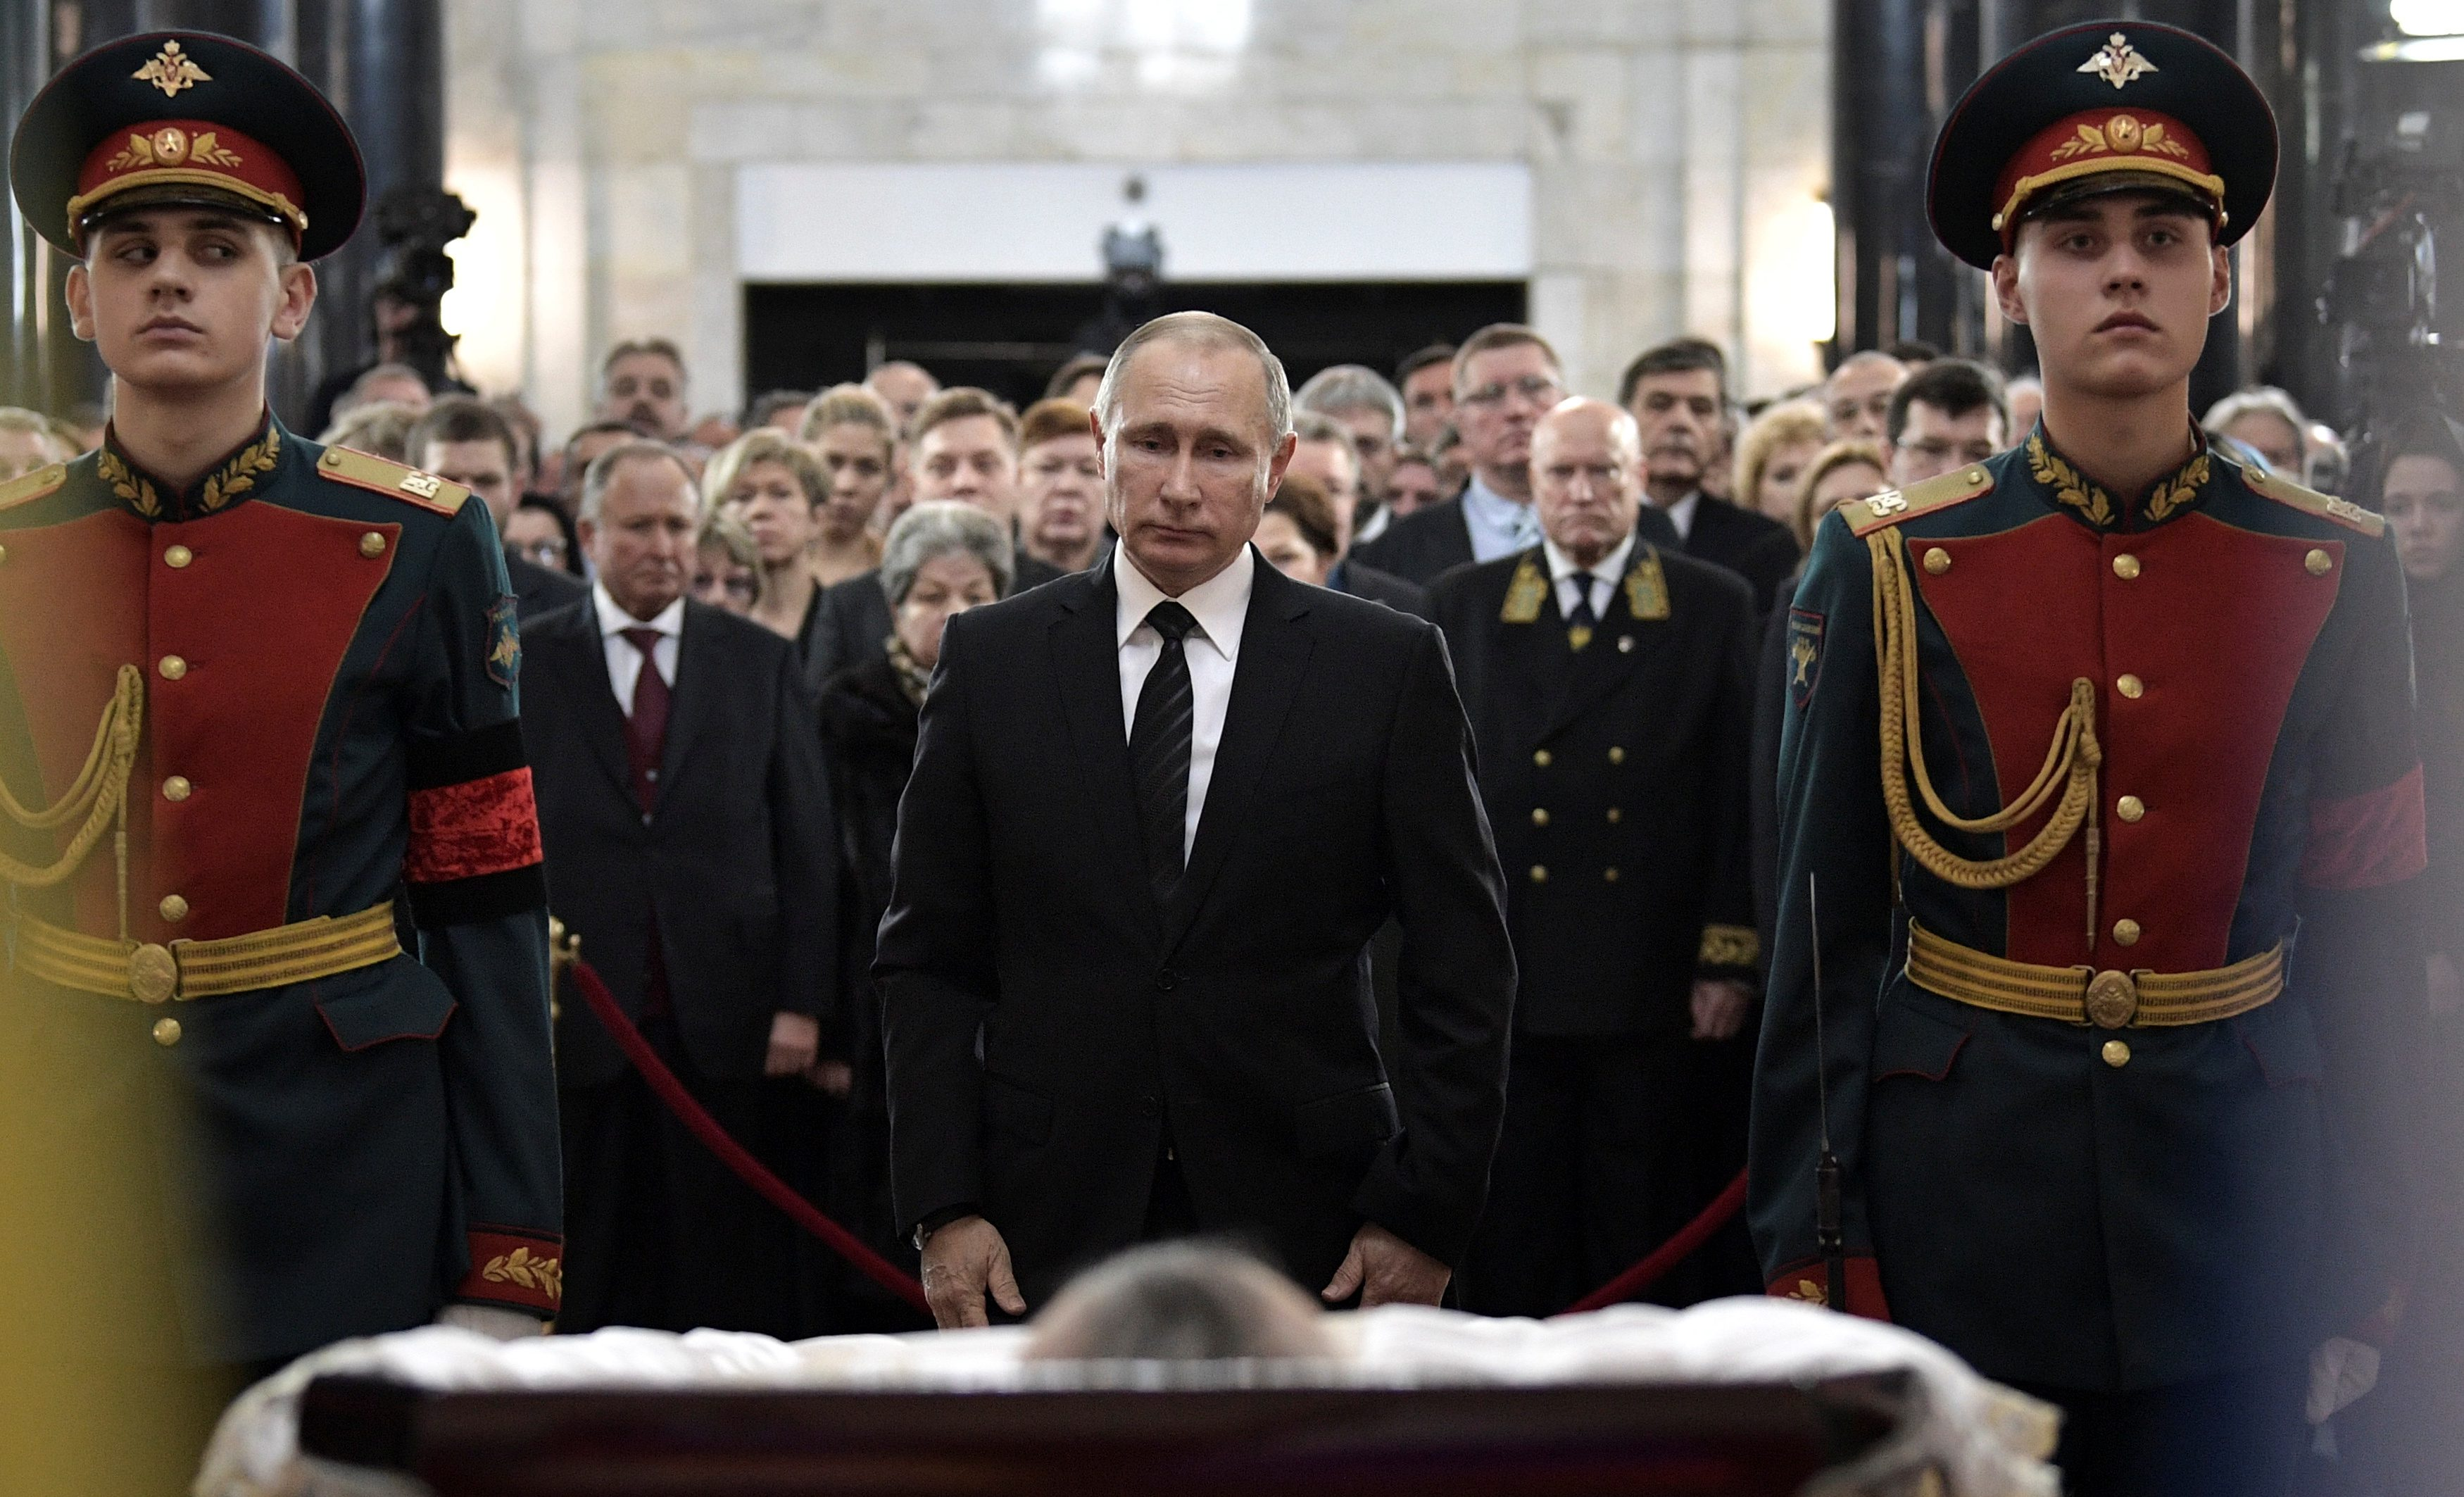 Russian President Putin attends memorial ceremony held for Russia's ambassador to Turkey Karlov, who was shot dead by off-duty policeman on December 19 in Ankara, in Moscow